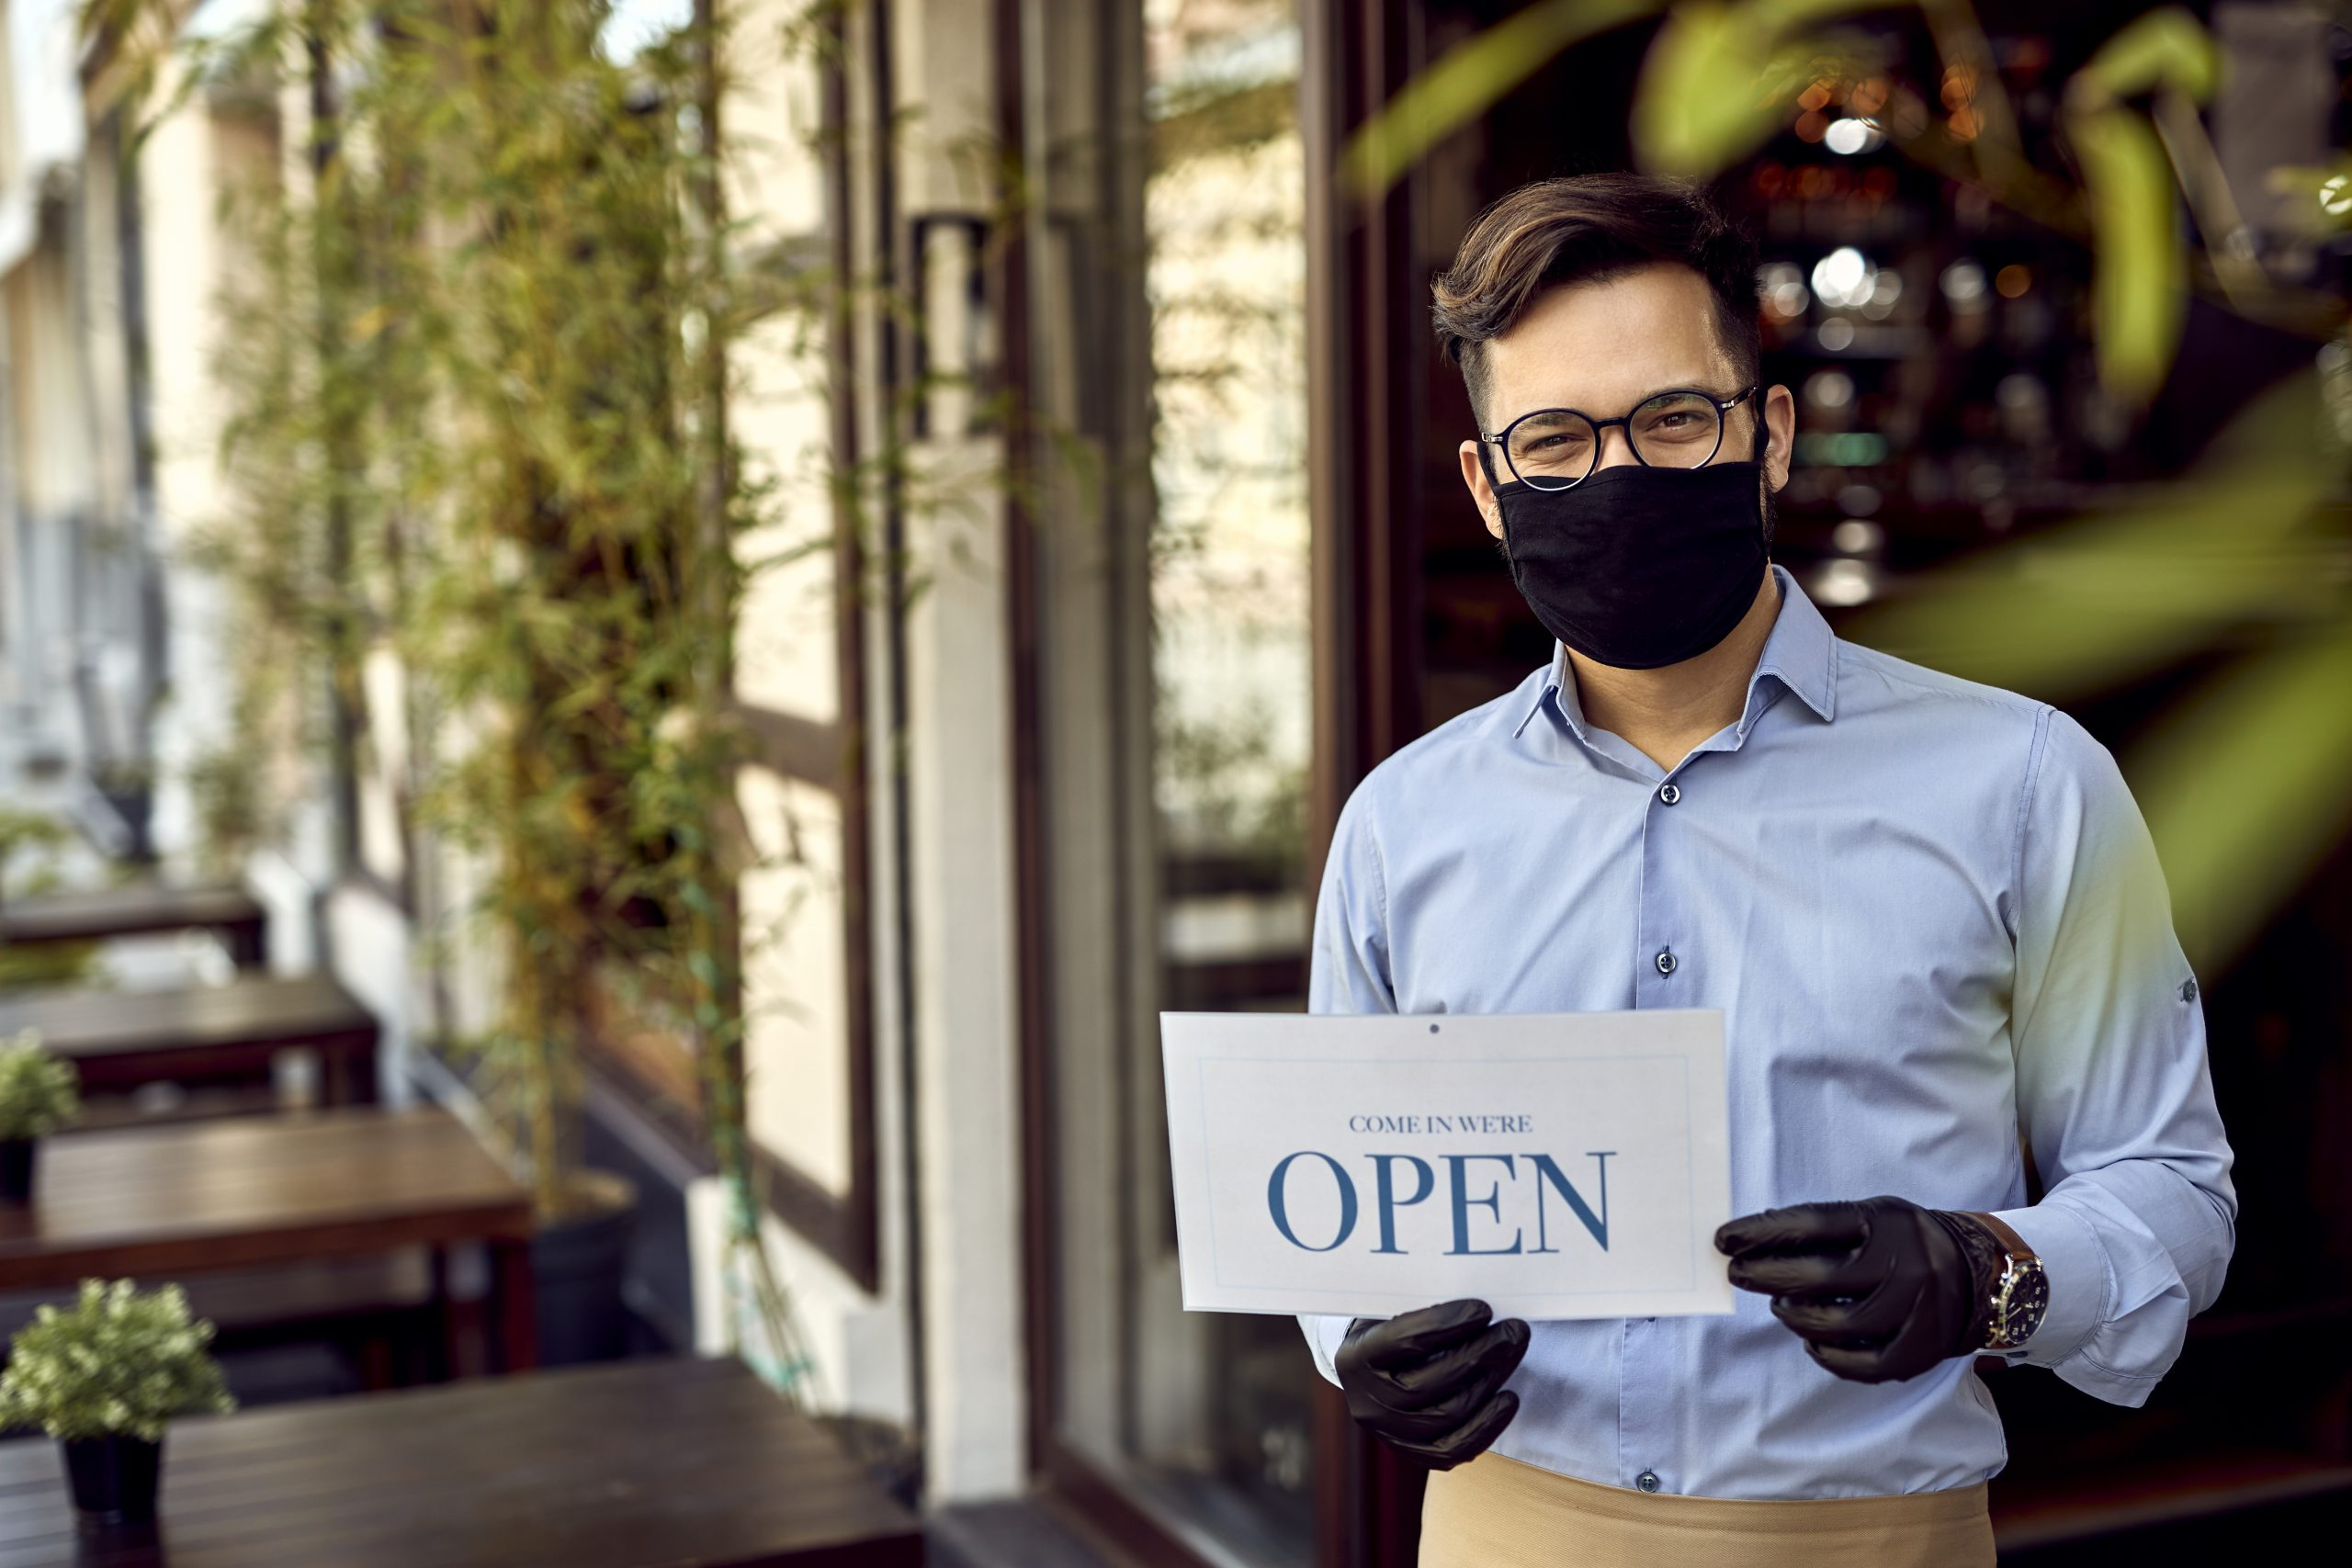 Happy cafe owner holding open sign while wearing protective face mask.